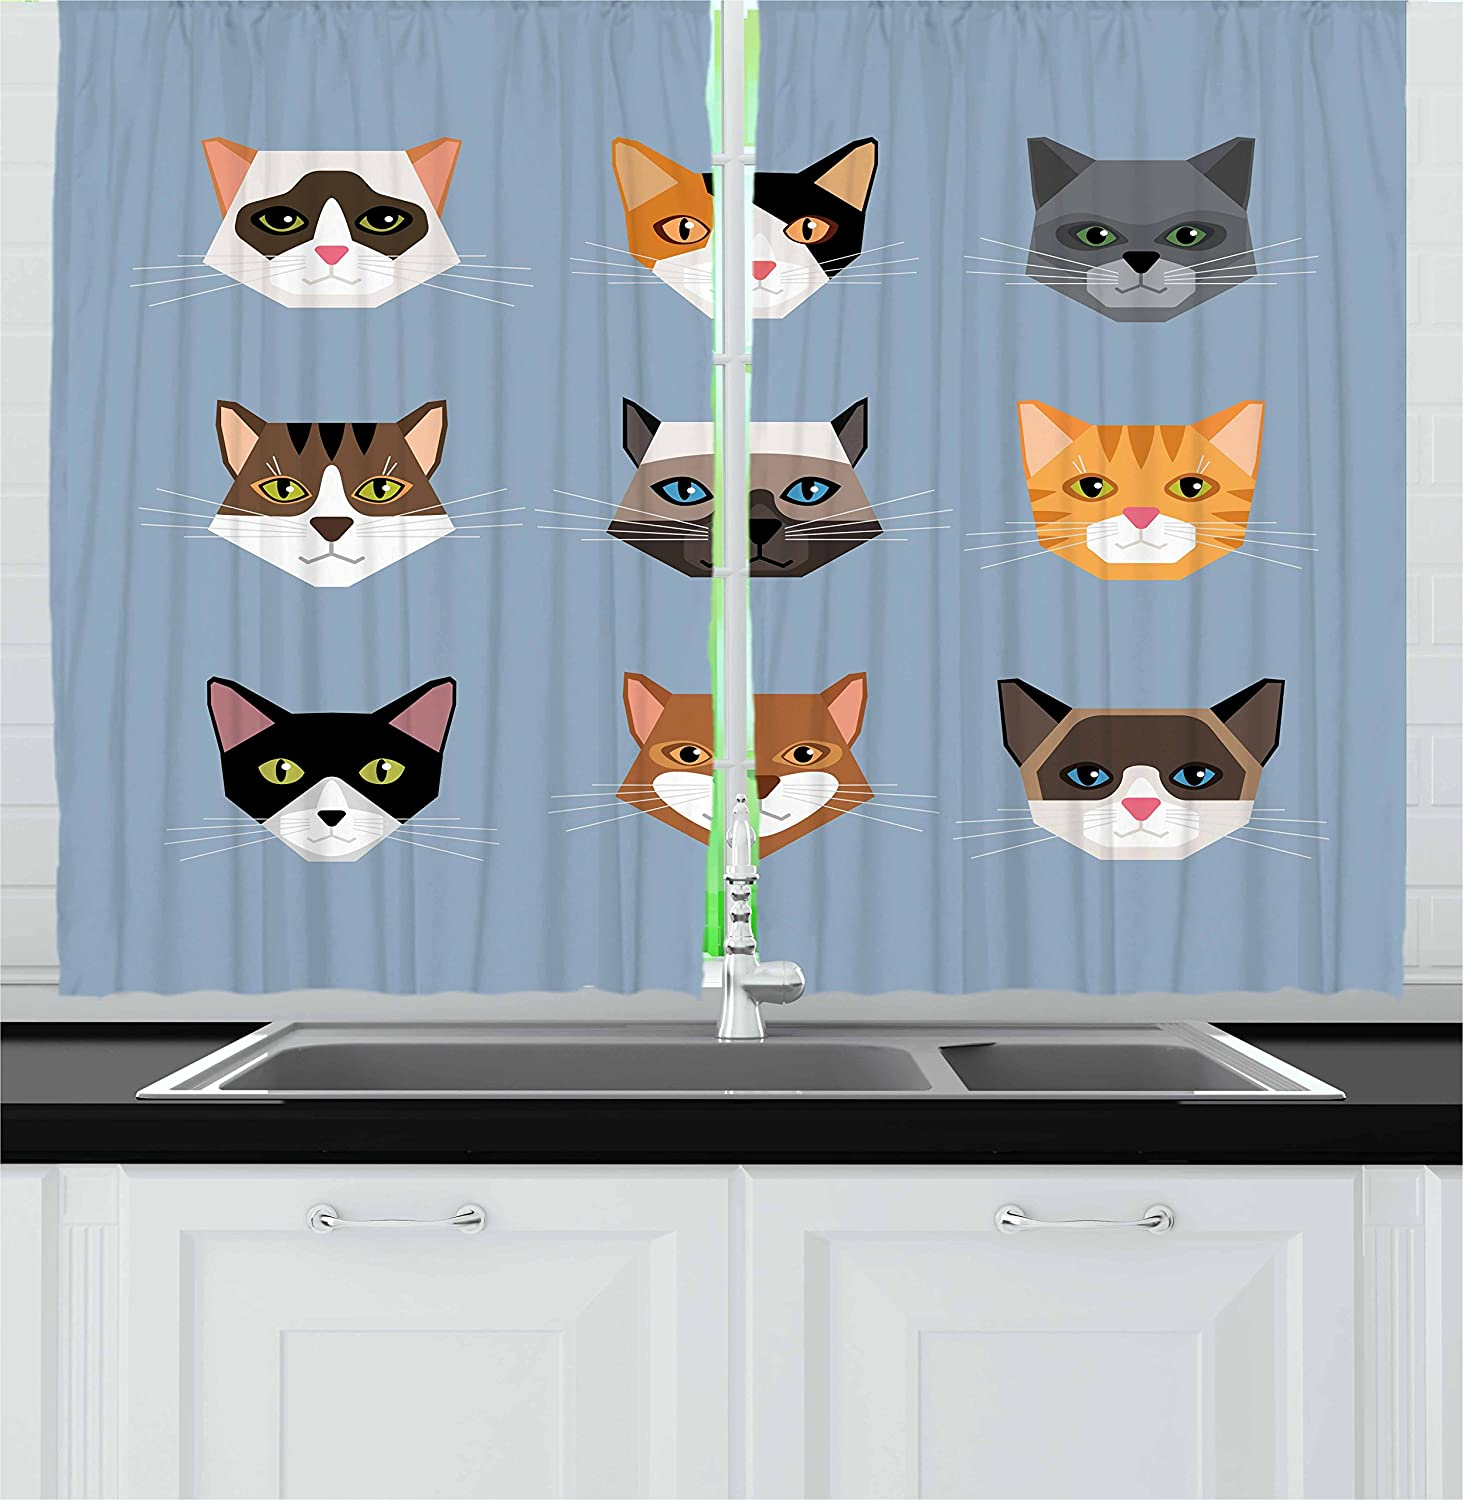 Amazon Com Ambesonne Cat Kitchen Curtains Animal Portrait Set With Kittens Face Whiskers Contemporary Caricature Pattern Window Drapes 2 Panel Set For Kitchen Cafe Decor 55 X 39 Multicolor Home Kitchen